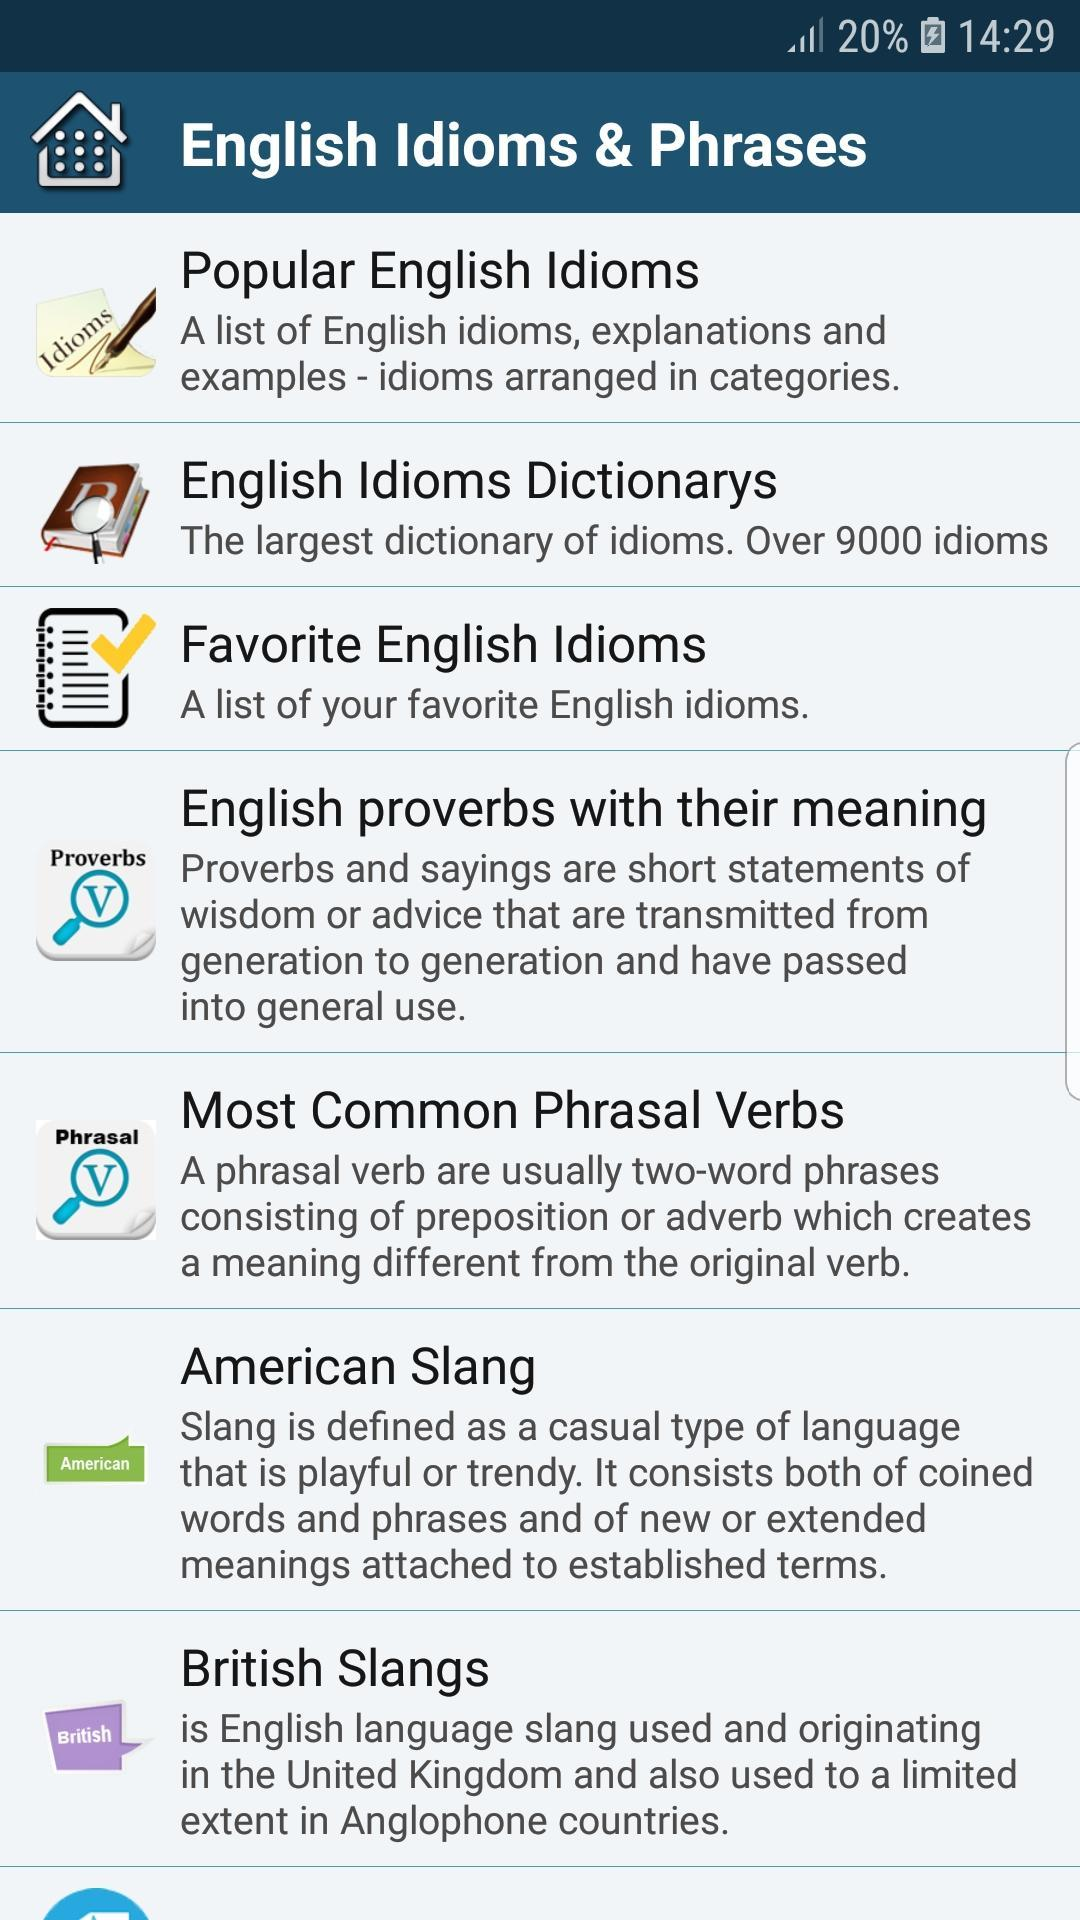 All English Idioms & Phrases for Android - APK Download